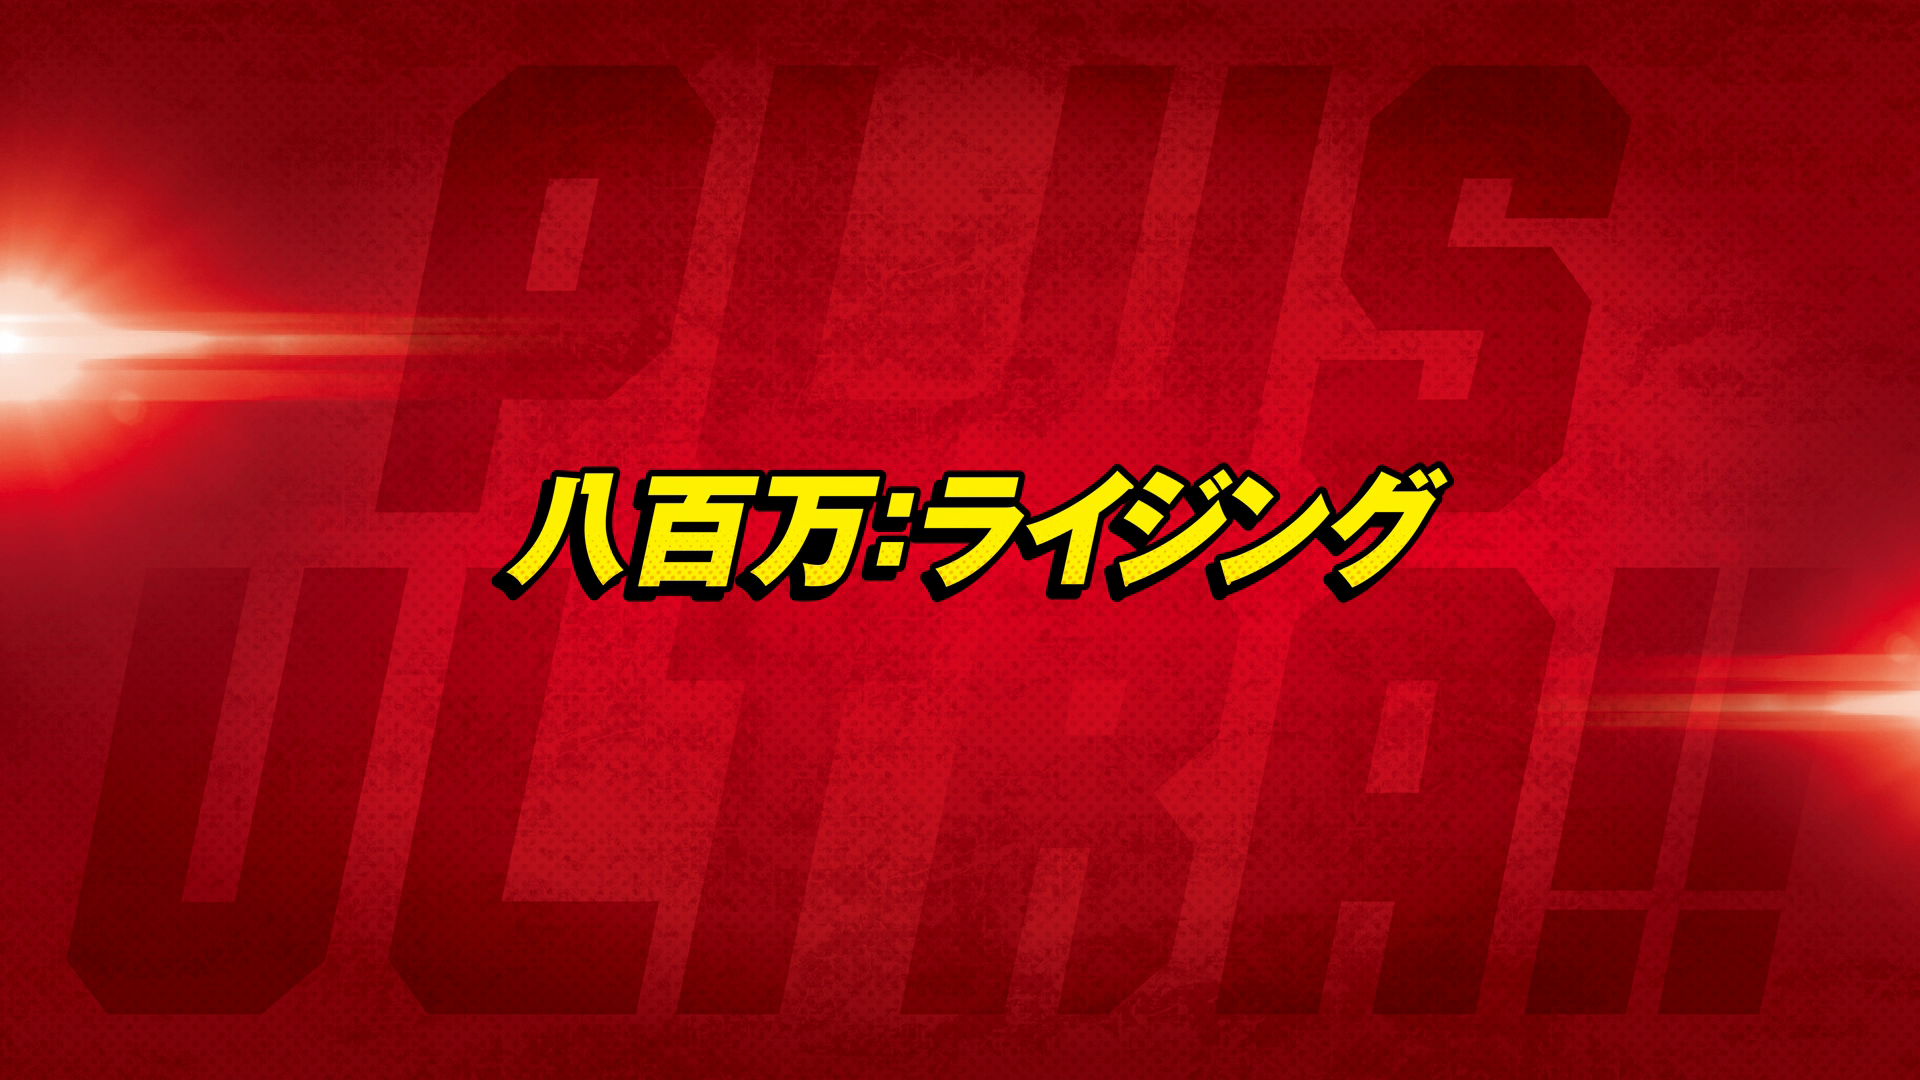 Episode 35 title card.png